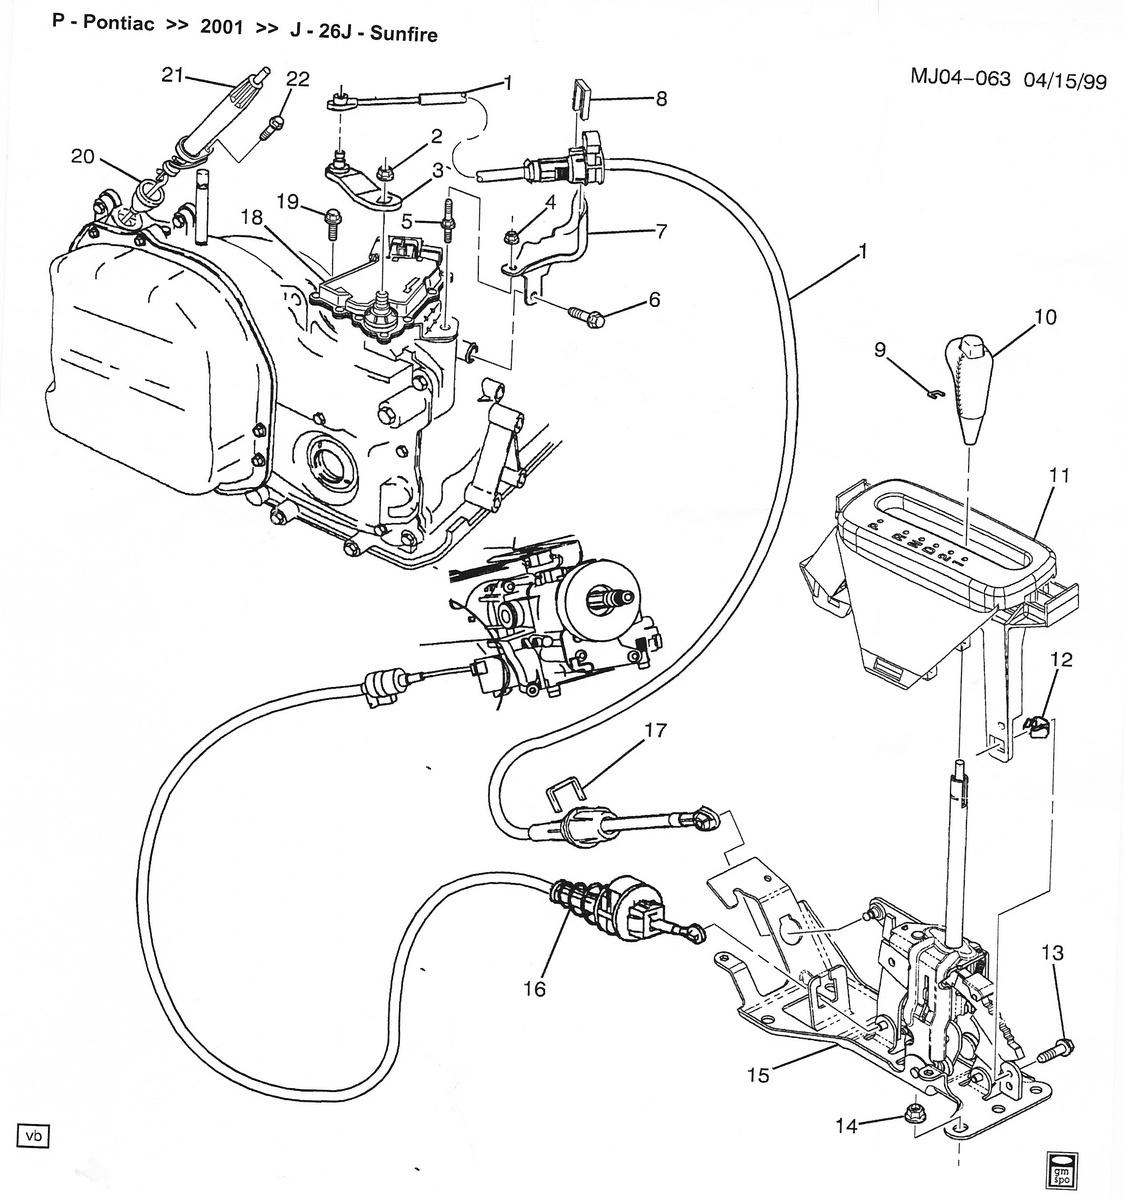 95 Camaro Door Lock Wiring Diagram on 2004 hyundai elantra stereo wiring harness